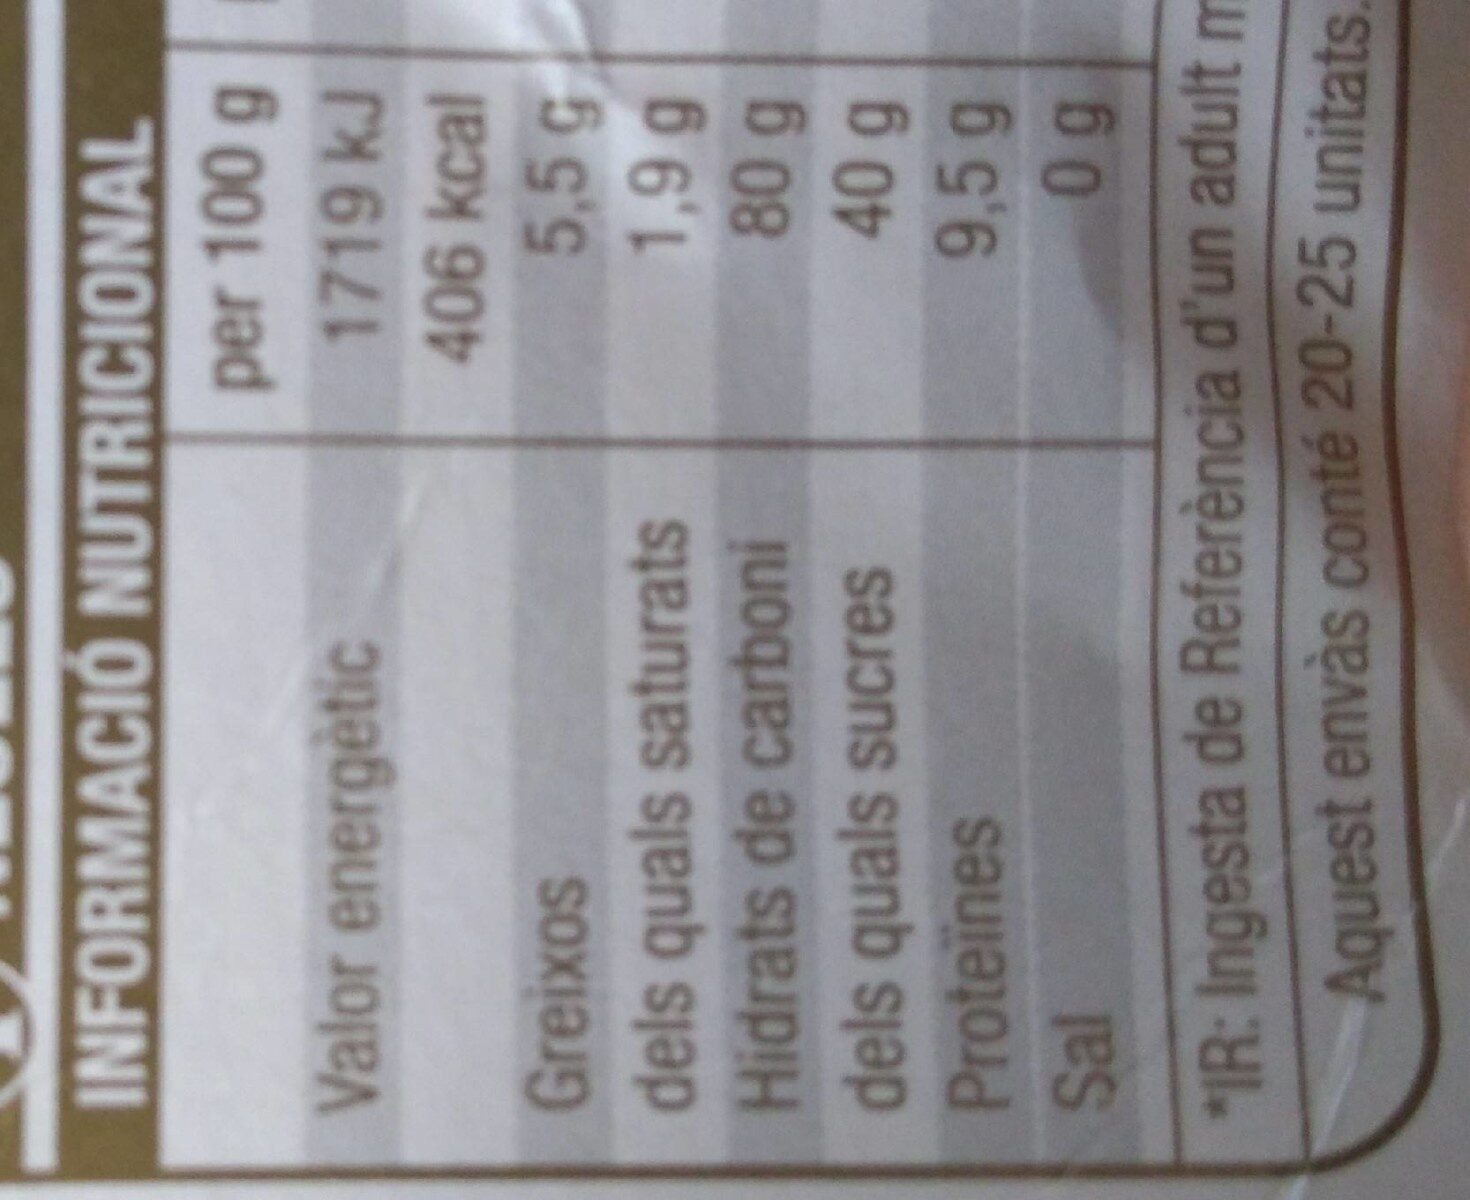 Neules - Nutrition facts